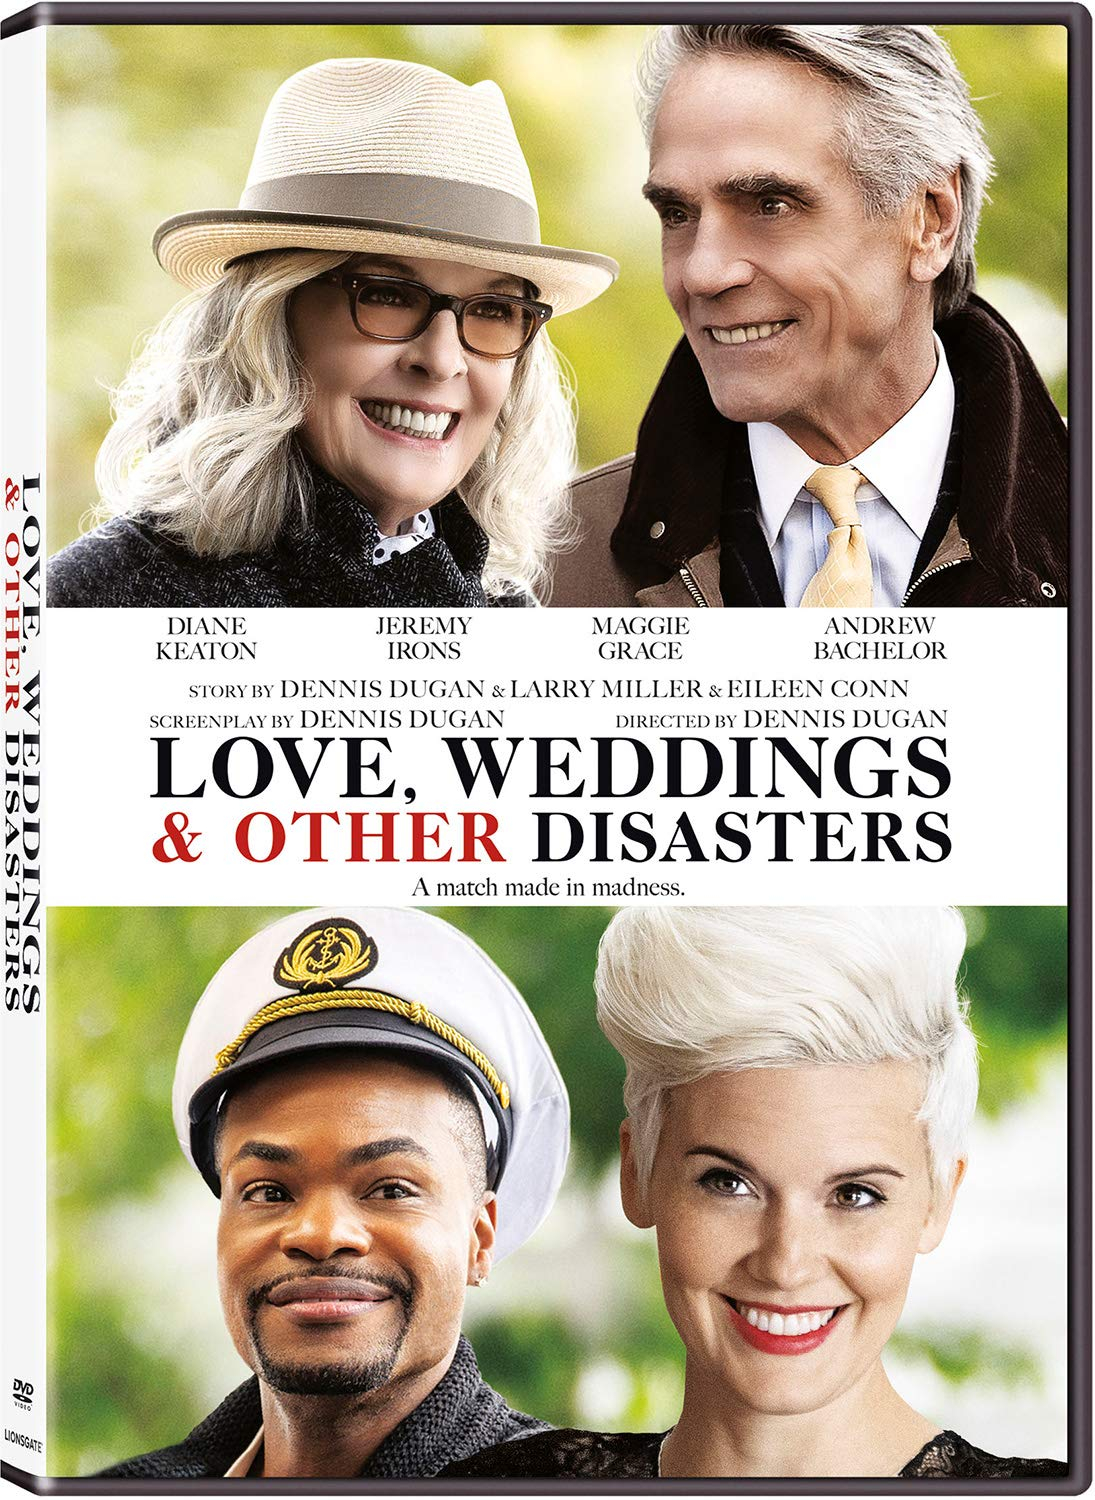 Book Cover: Love, weddings & other disasters